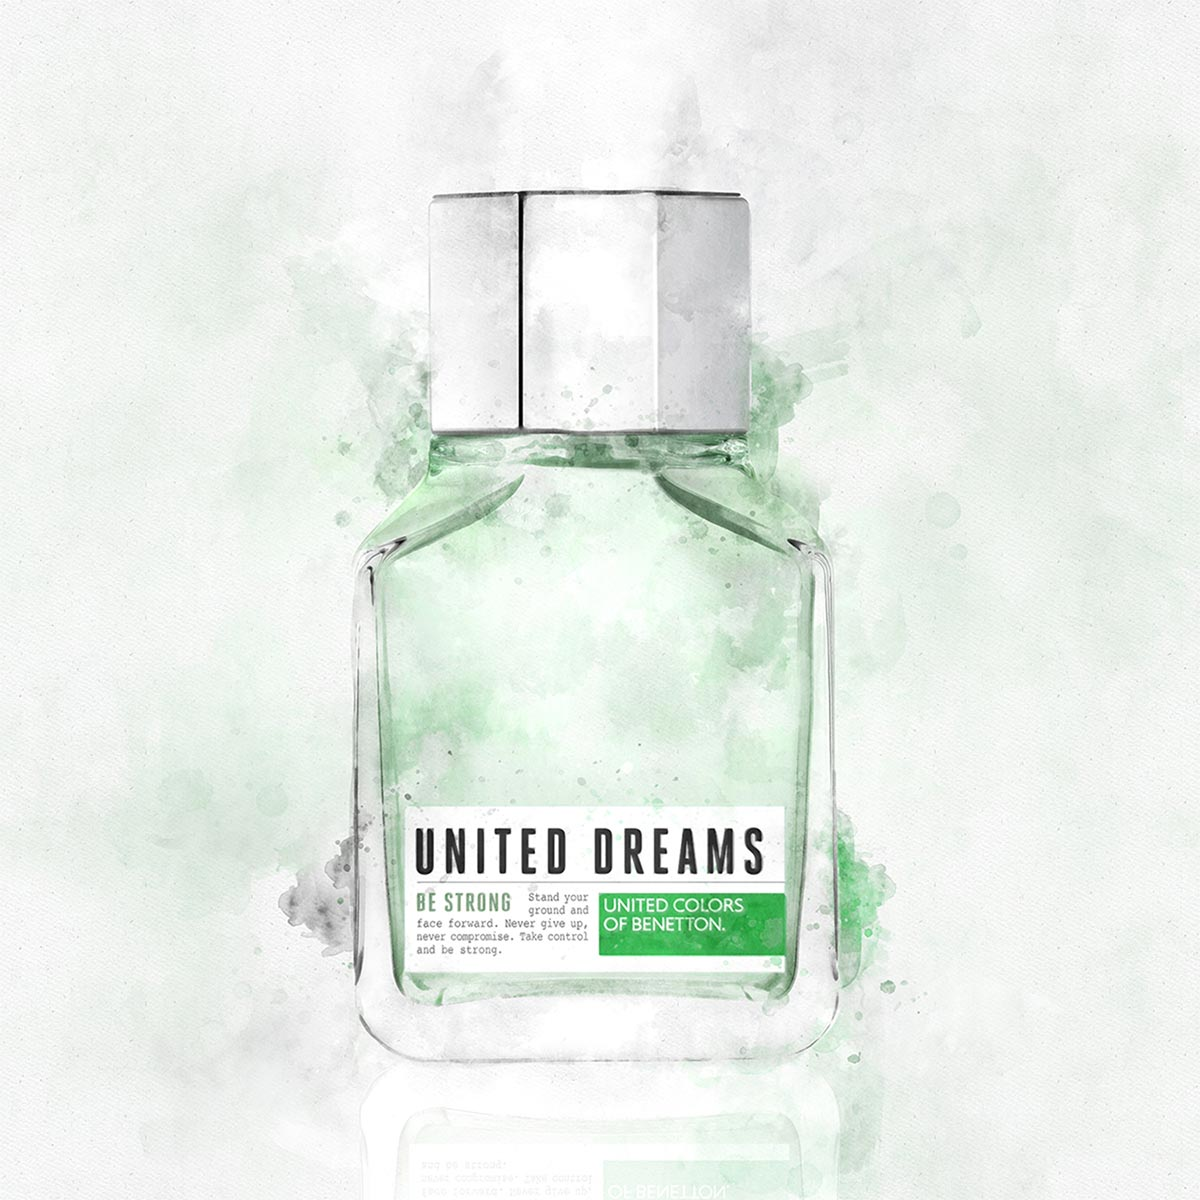 UNITED DREAMS BE STRONG EAU DE TOILETTE 100ML